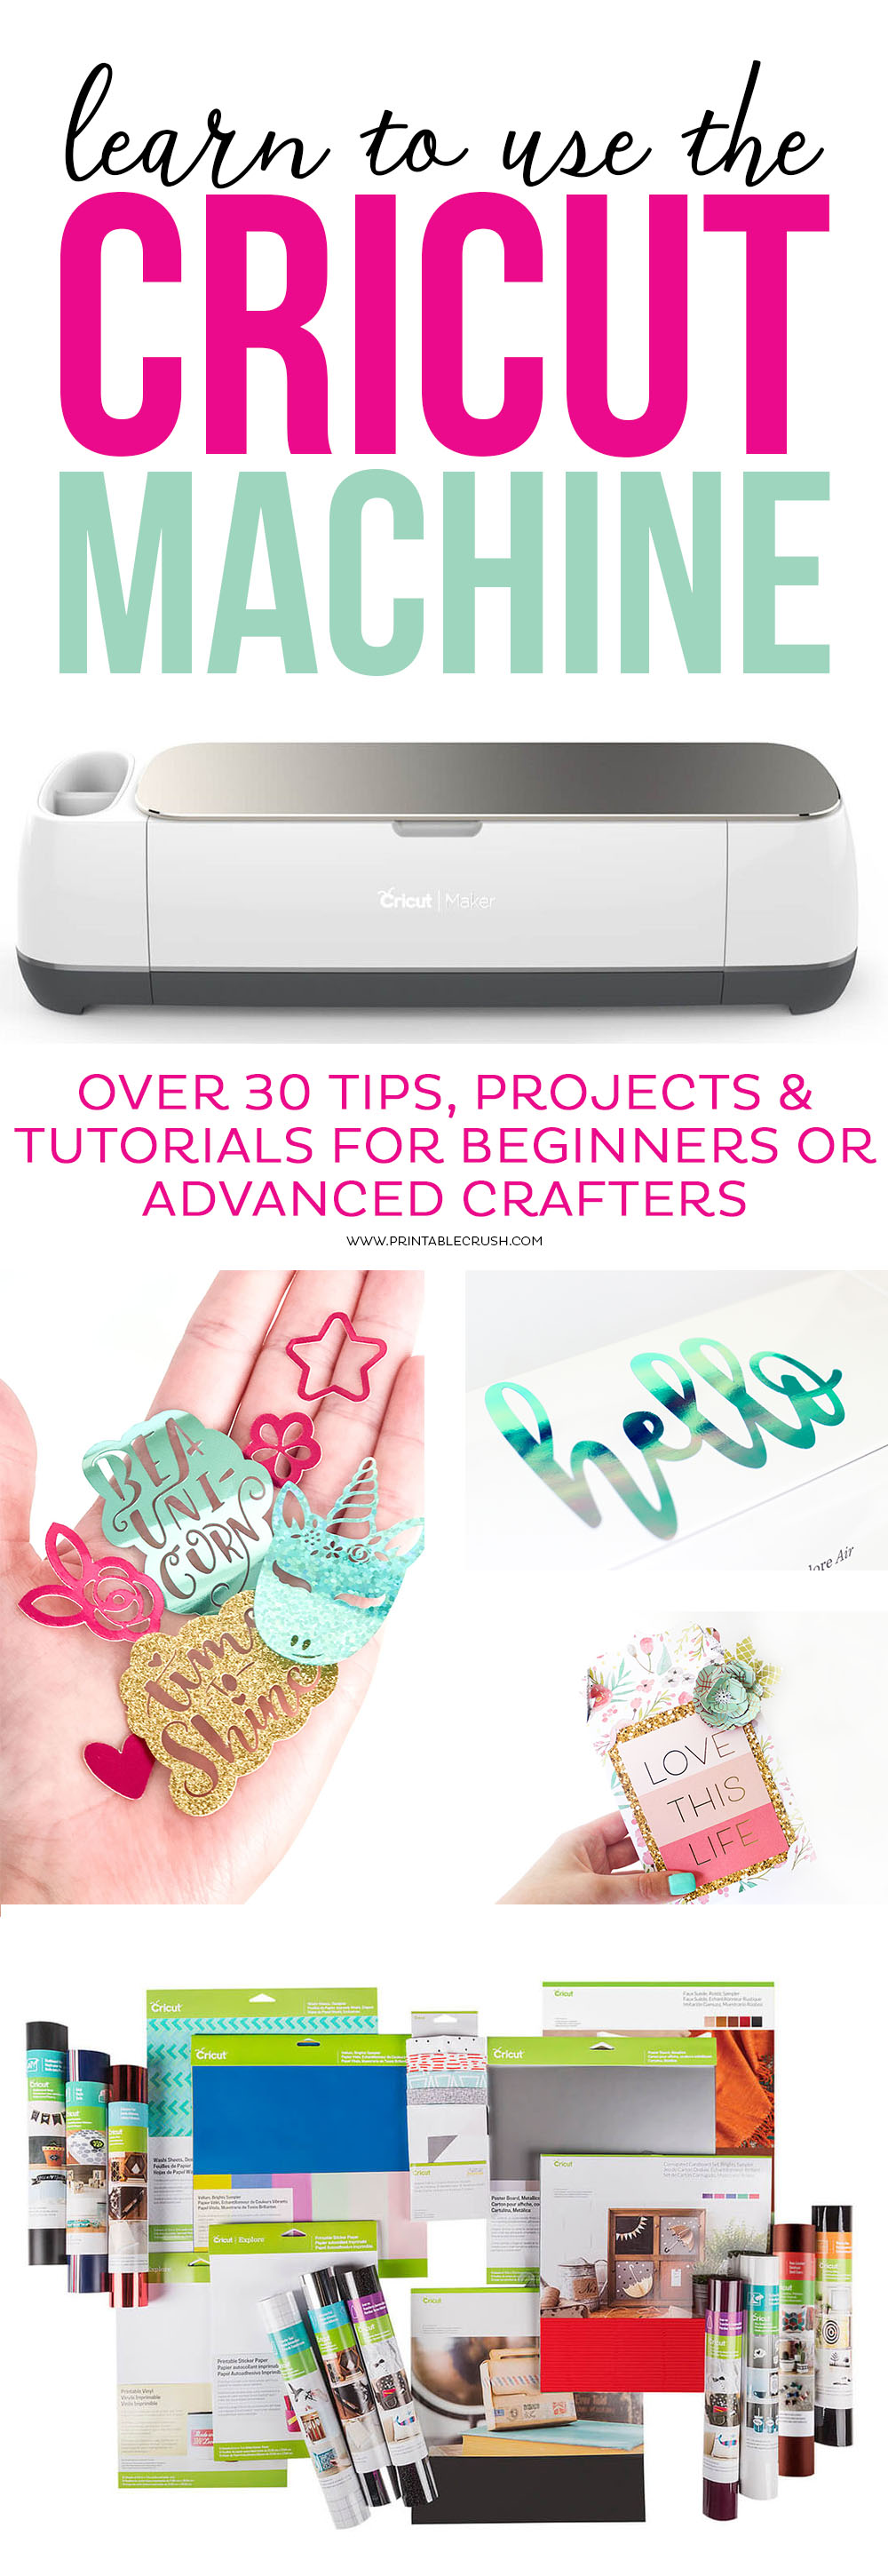 Learn to use the Cricut Machine with over 30 tips, projects, and tutorials for beginners or advanced crafters! via @printablecrush